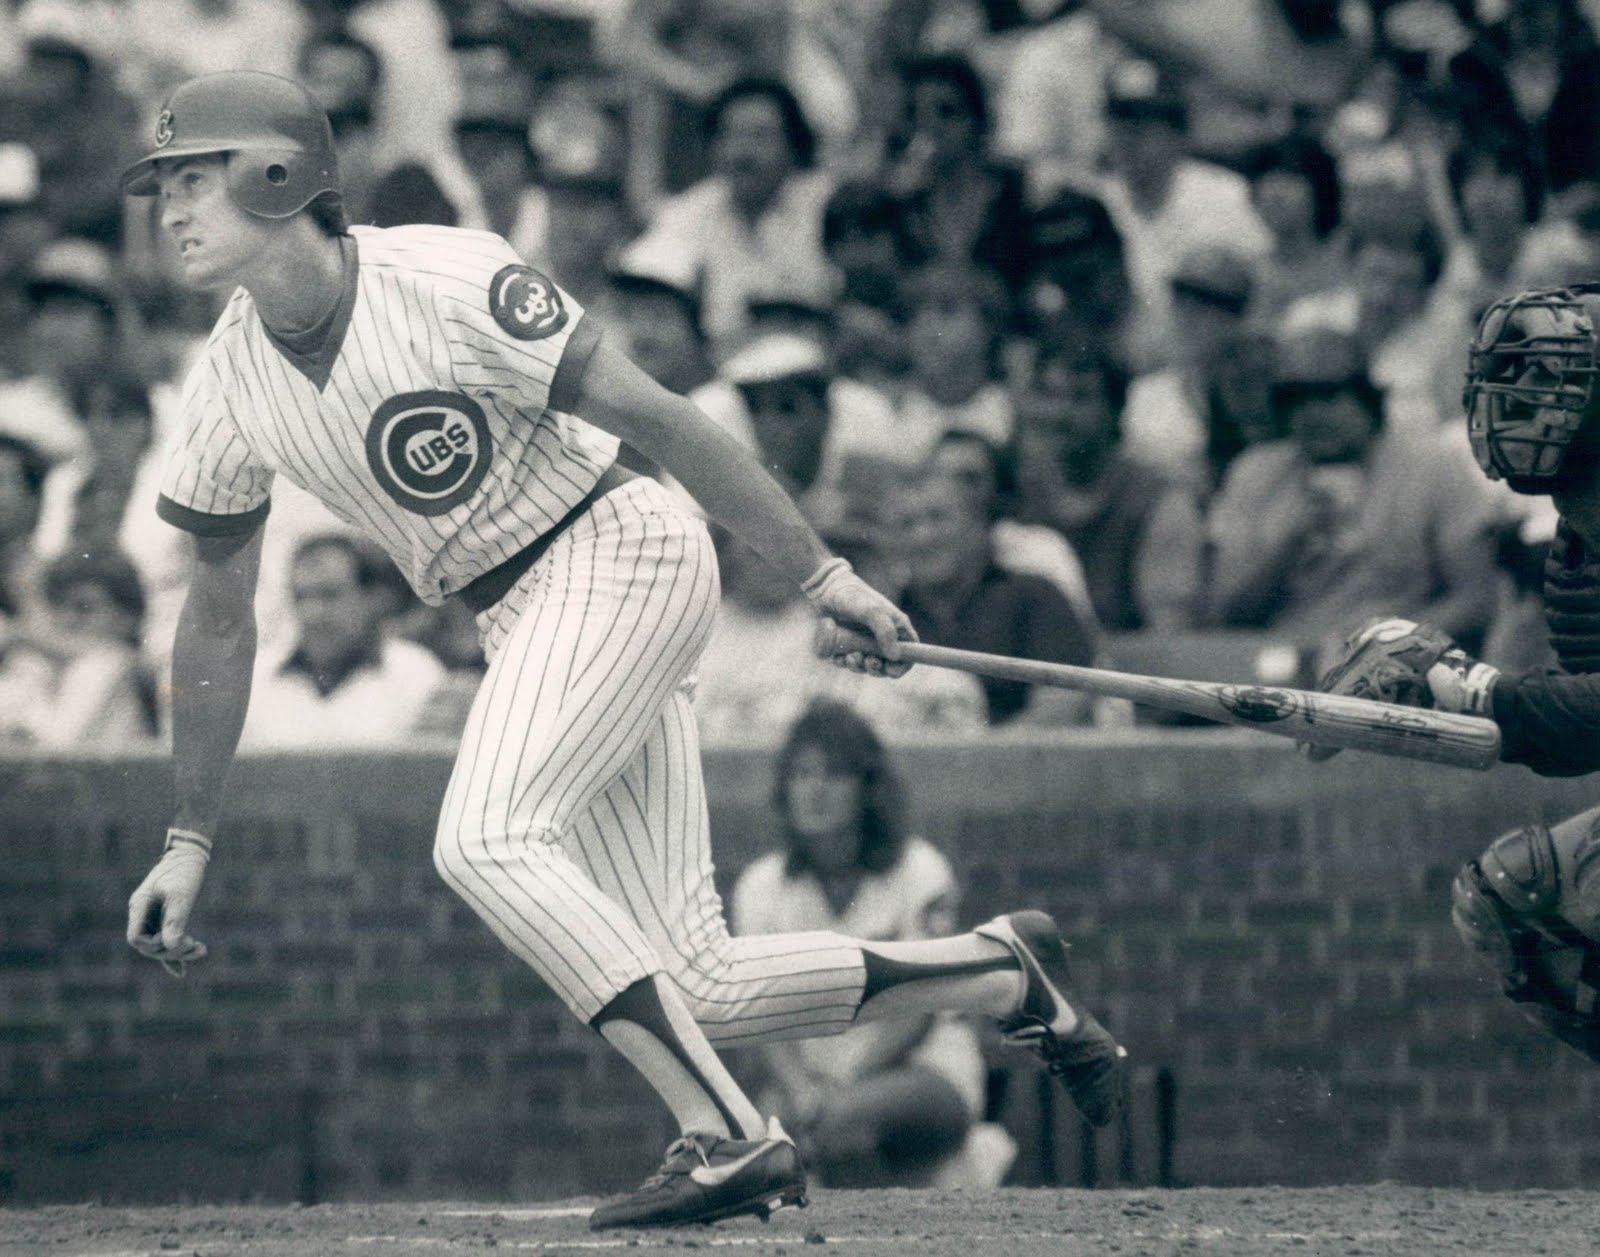 6f5cf1b183b The argument seems to make a difference if you are a Cubs fan as this  wonderful baseball experience inexplicably did not make MLB Network s 20  Greatest ...